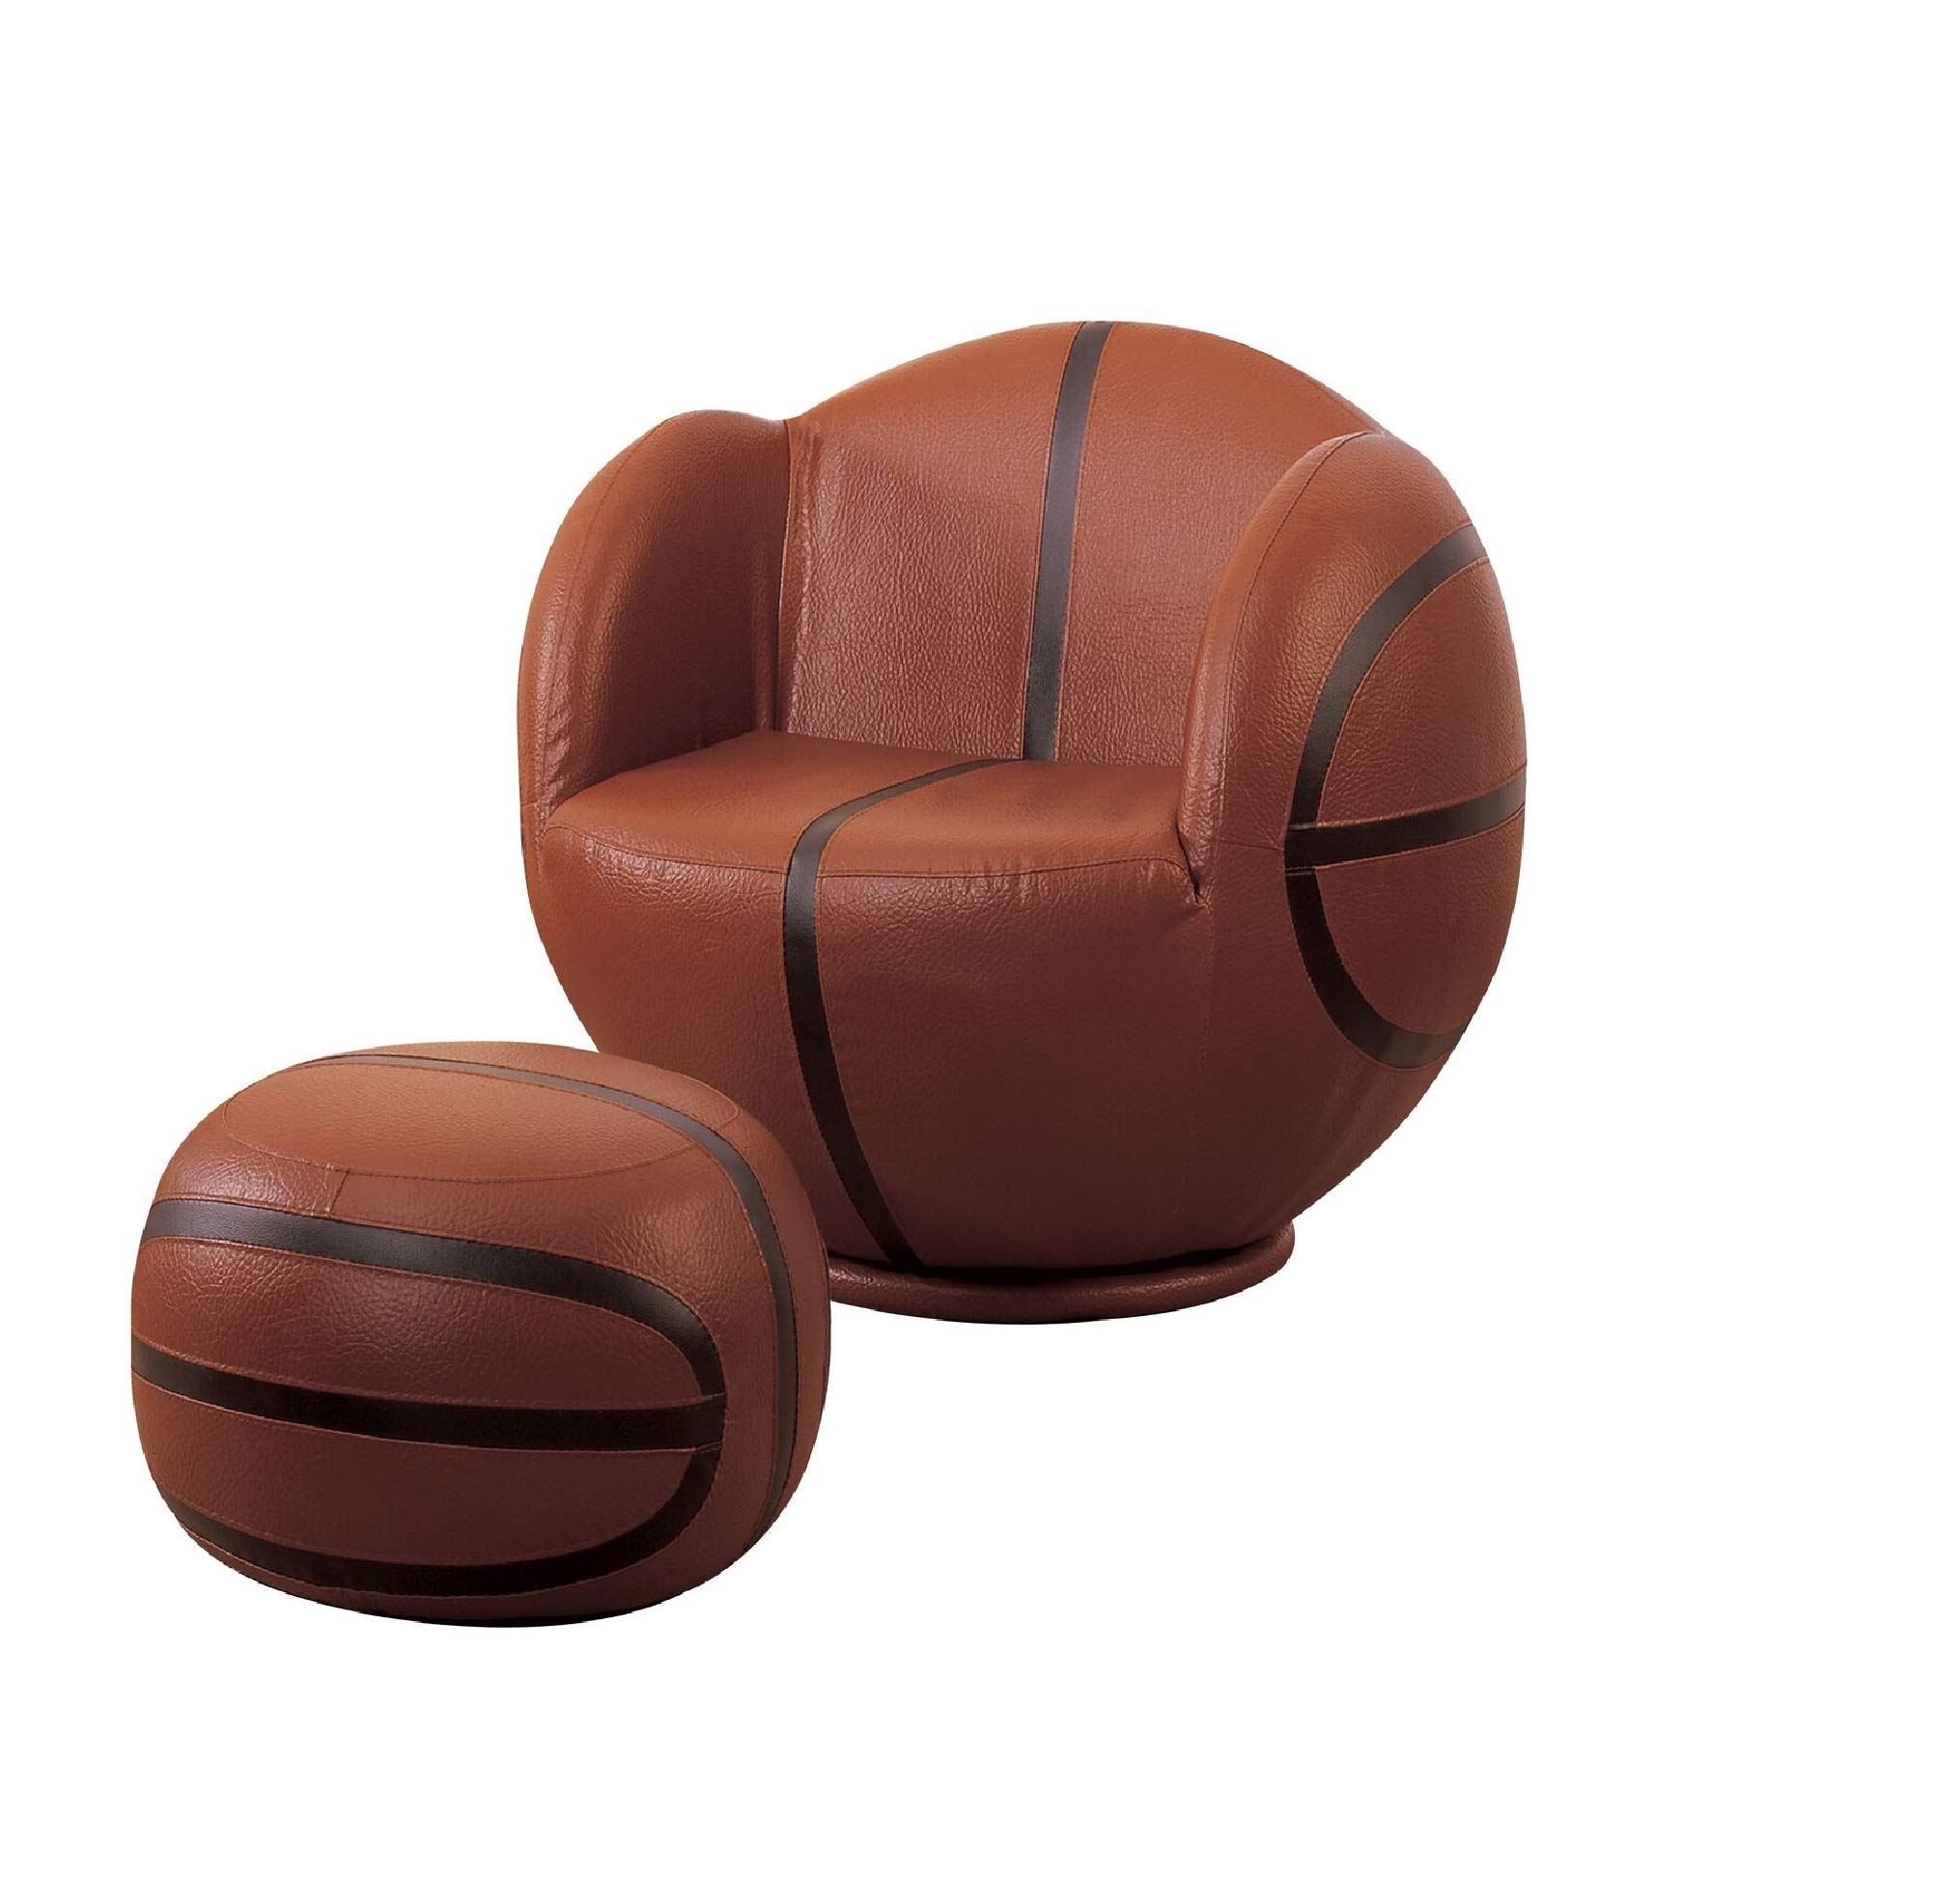 Major-Q 2 Pc Pack Youth Style Basketball Sport Theme 360 Degrees Swivel Chair and Ottoman Set 9005527